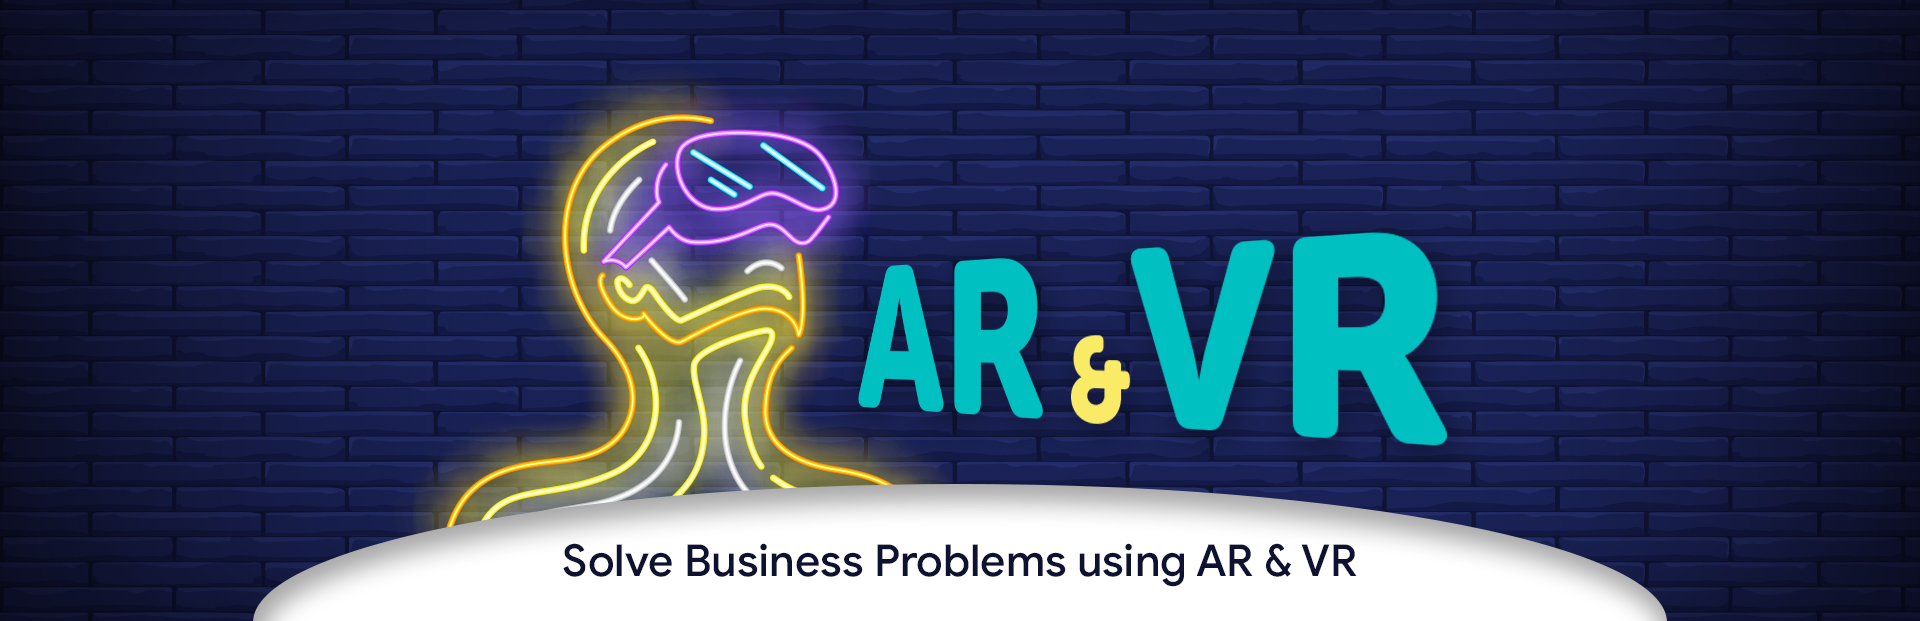 How can you solve business problems using AR & VR?